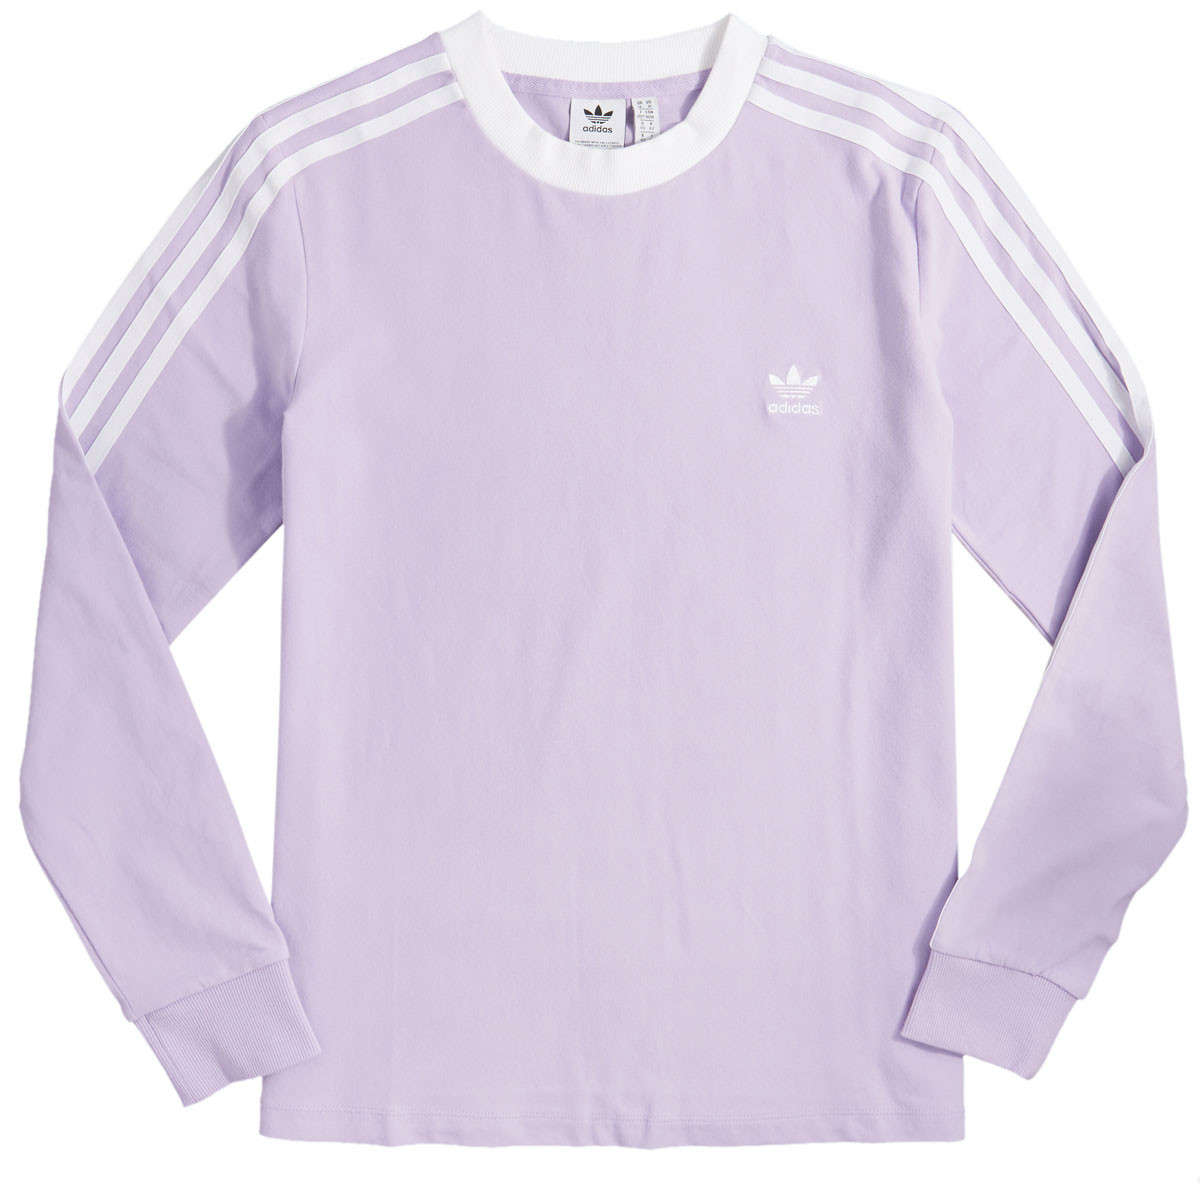 great deals 2017 superior quality rock-bottom price Adidas Womens 3 Stripe Long Sleeve T-Shirt - Purple Glow